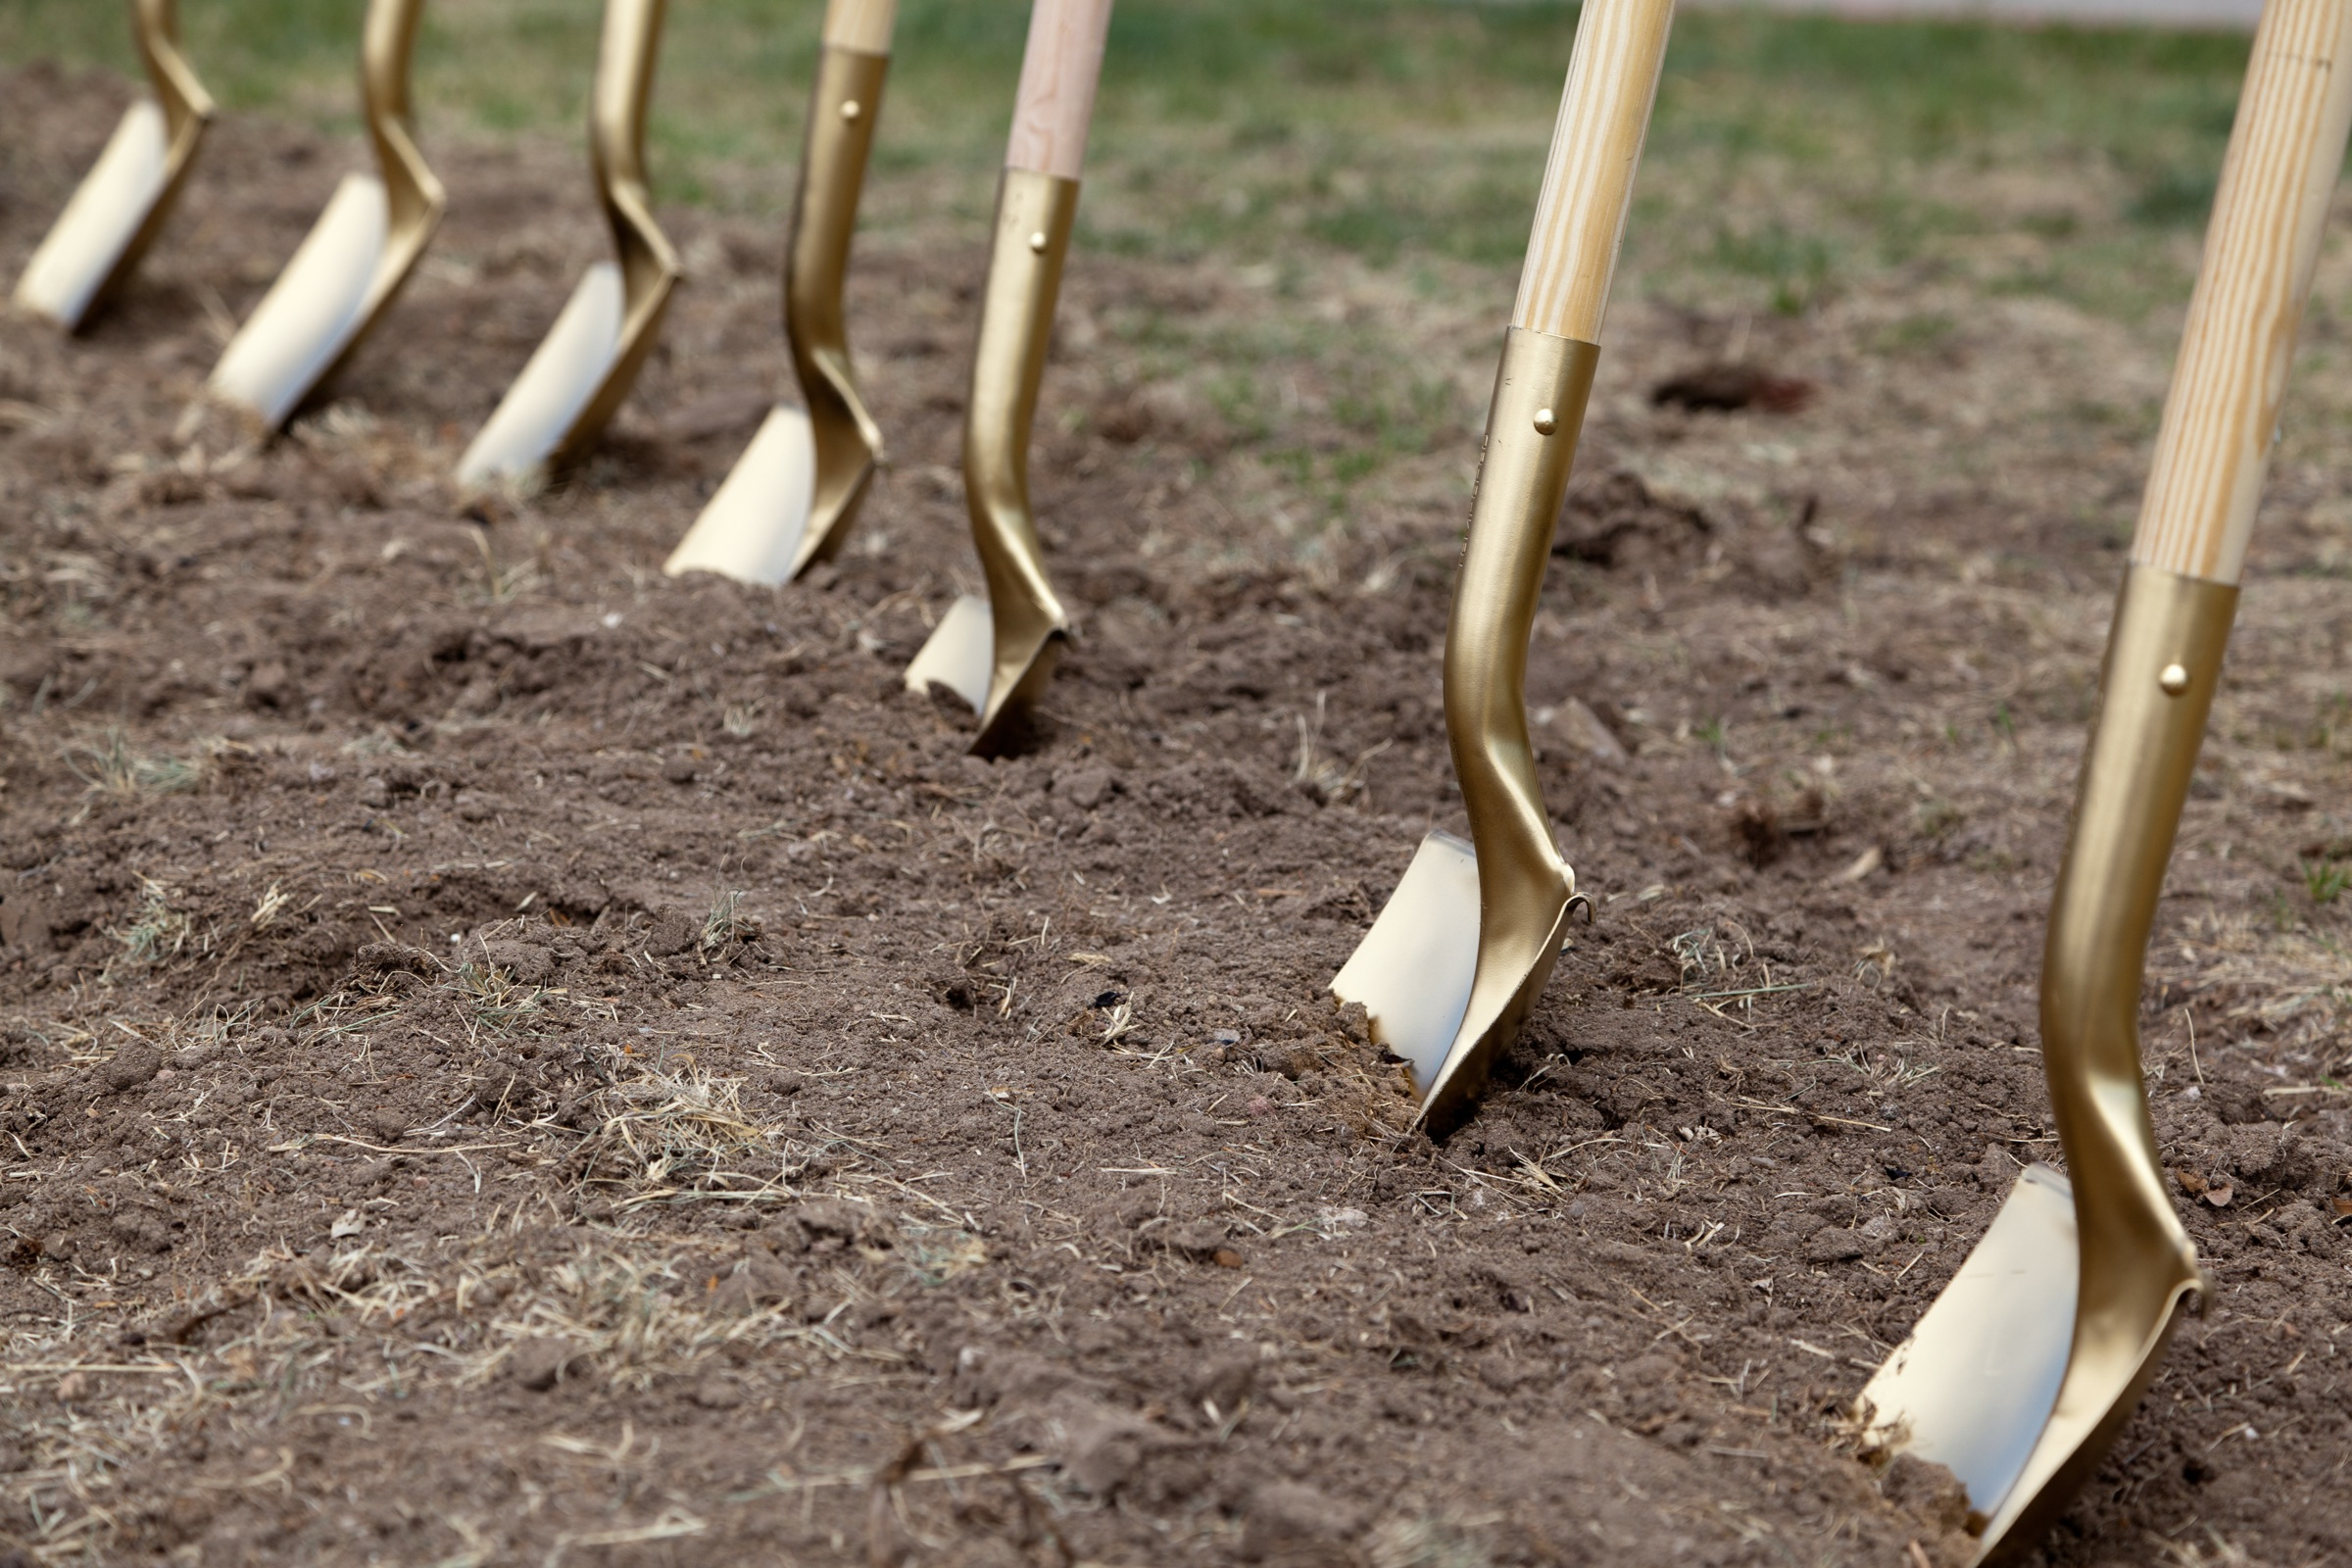 shovels-in-dirt.jpg